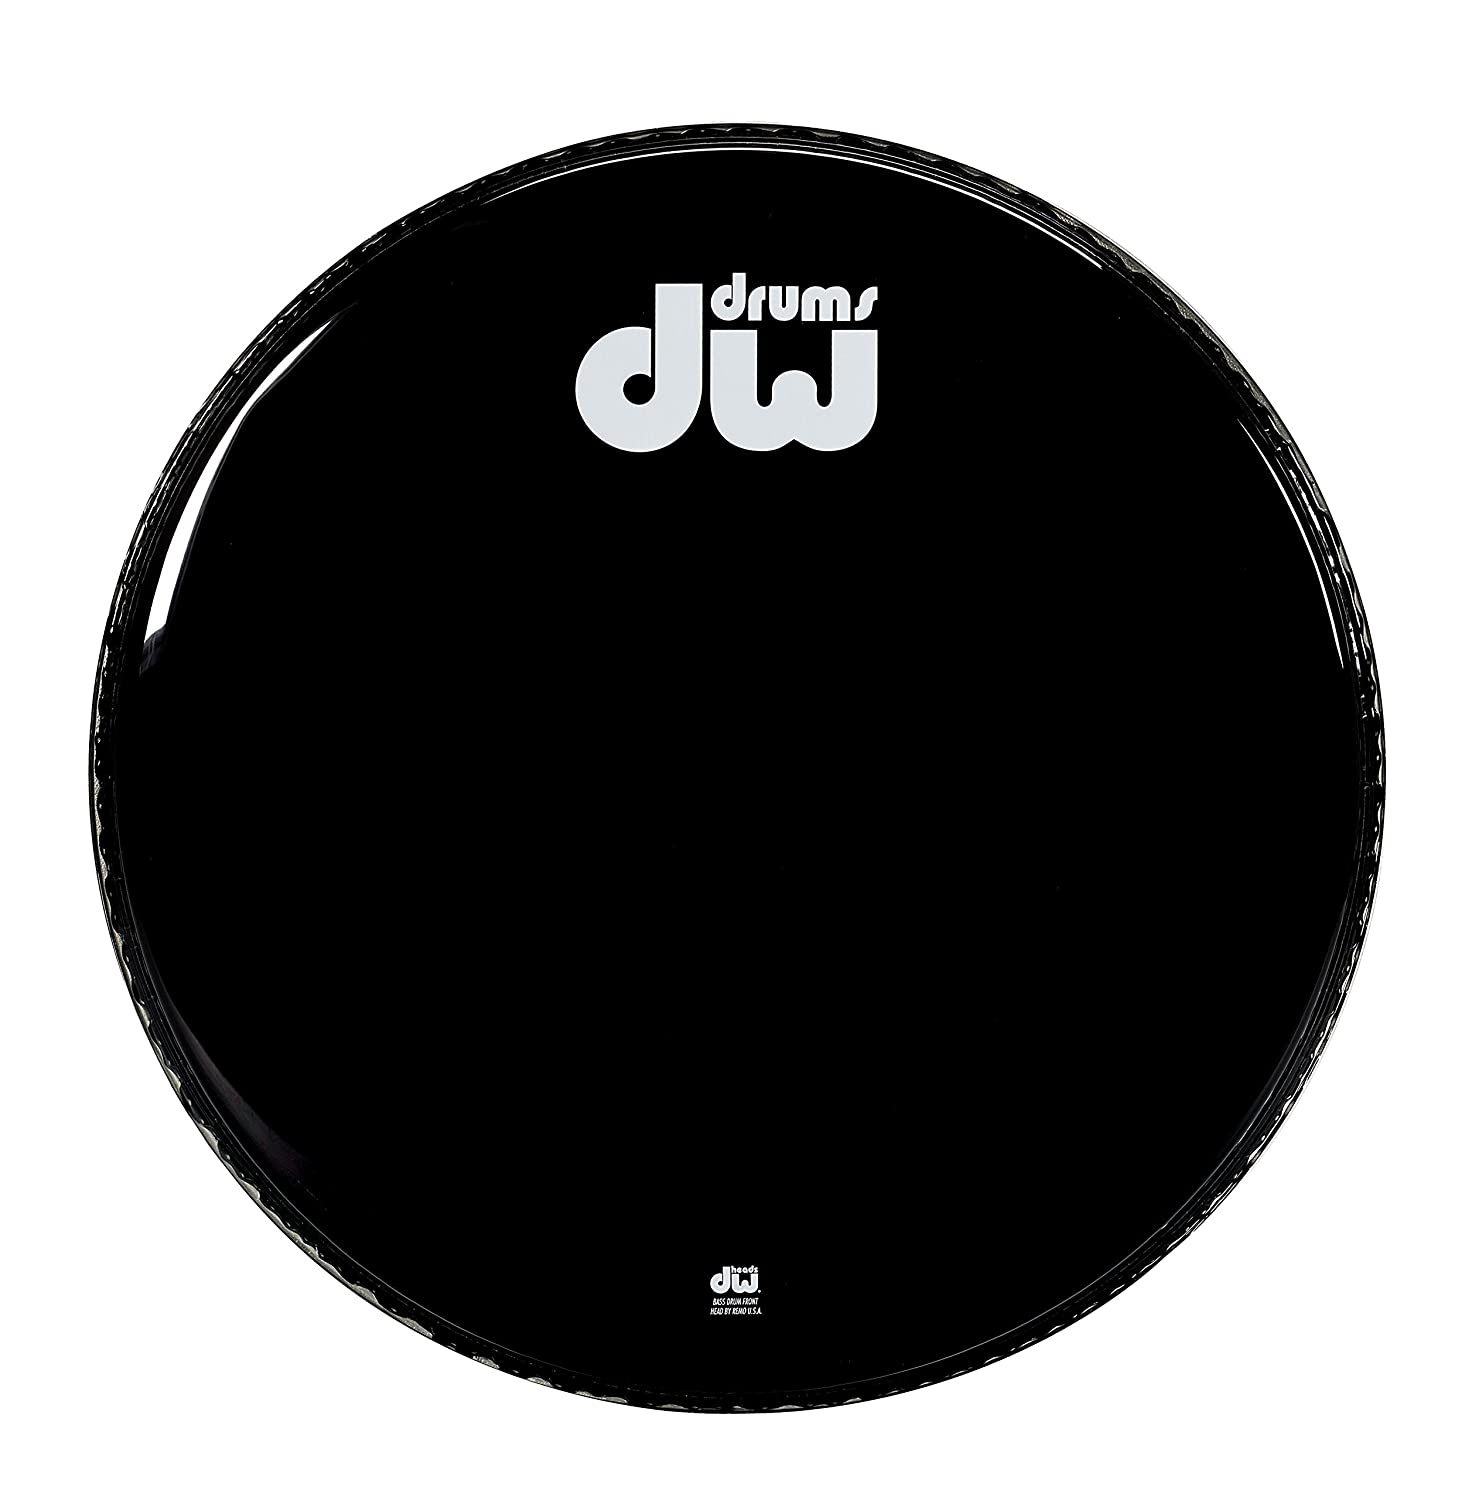 DW Drum Workshop 22 Gloss Black Bass Drum Head DRDHGB22KNV